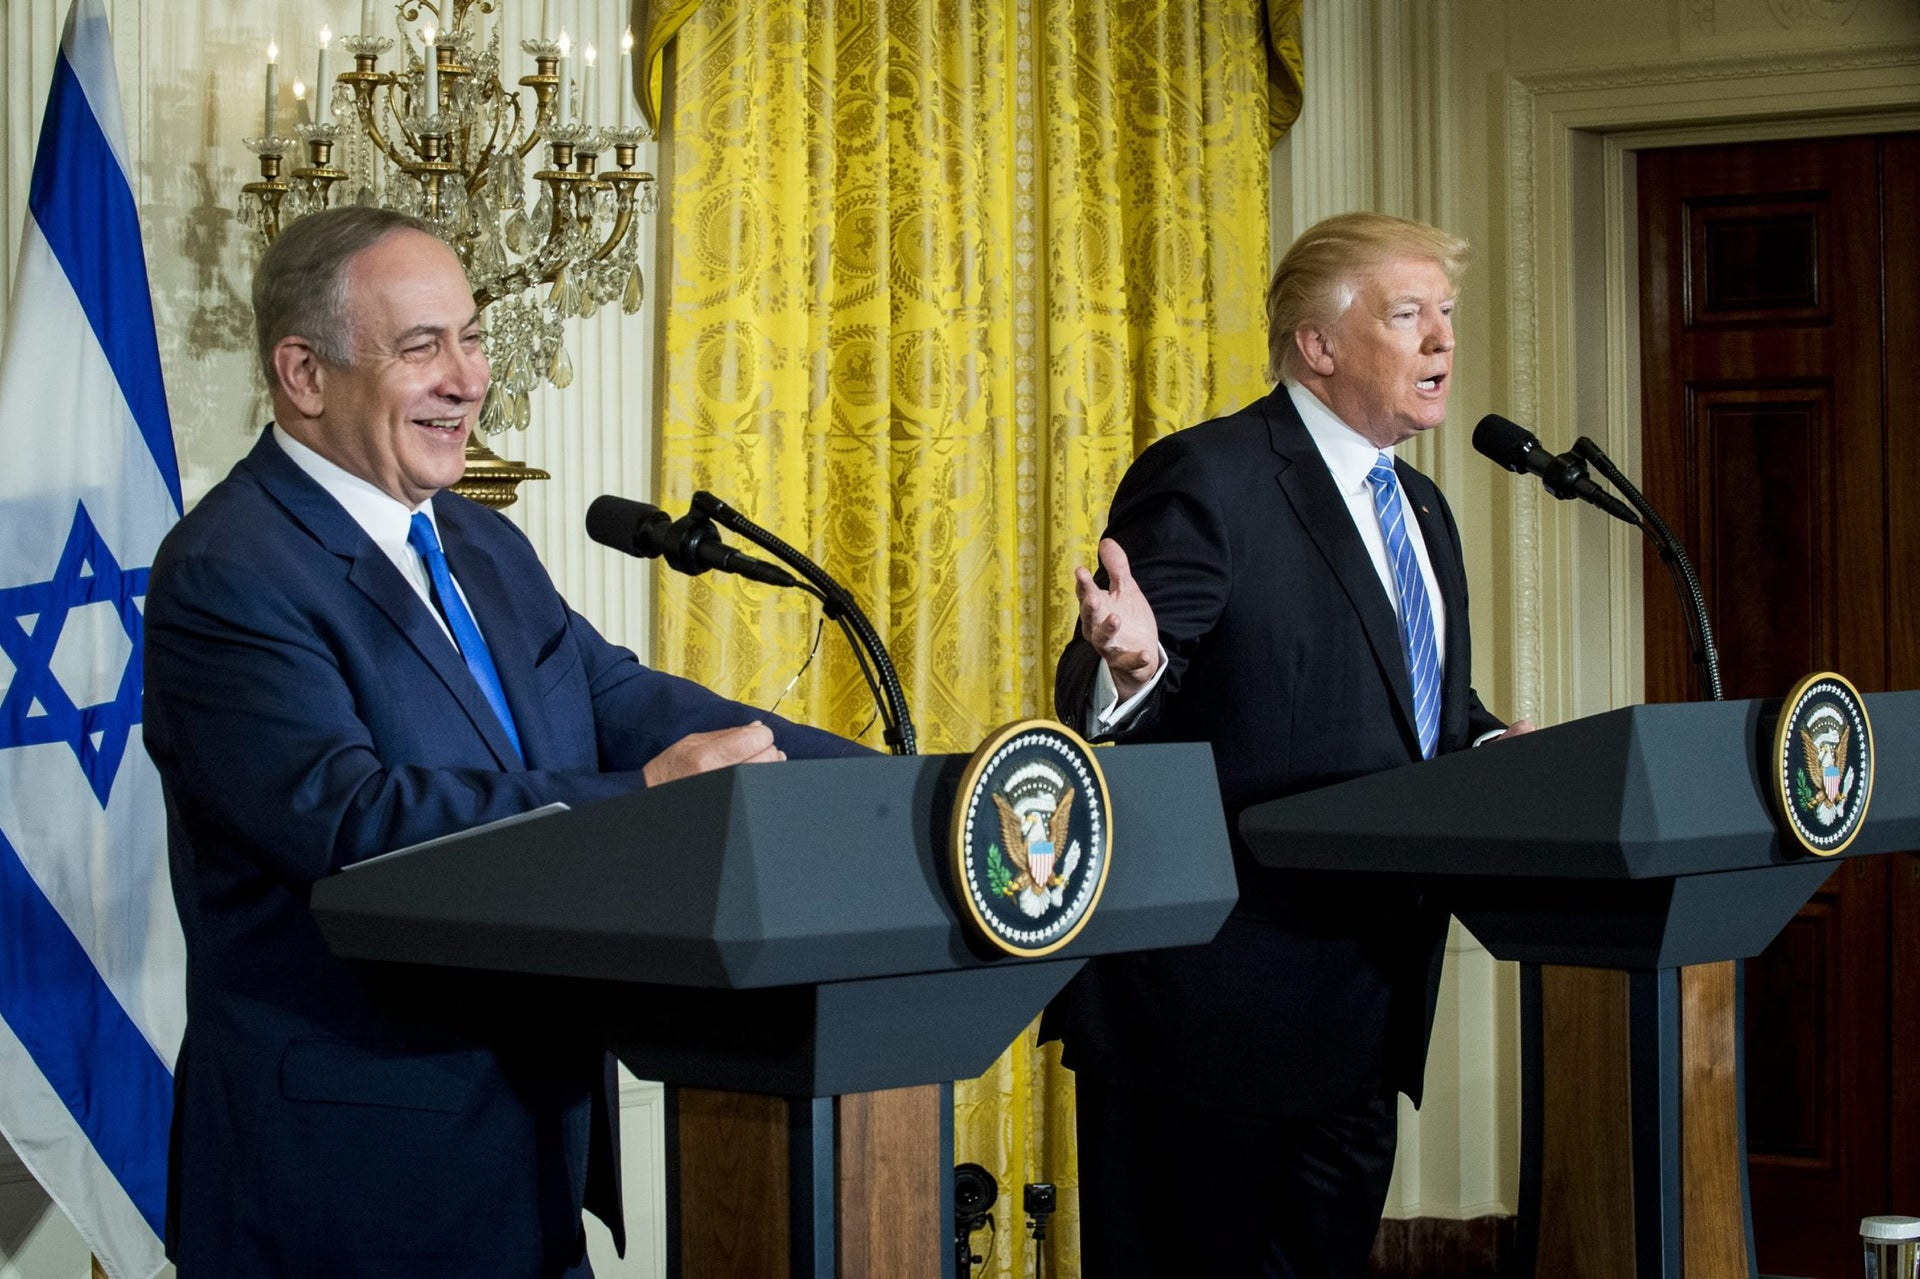 U.S. President Donald Trump, right, speaks while Benjamin Netanyahu, Israeli's prime minister, smiles during a news conference in the East Room of the White House in Washington, D.C., U.S., Feb. 15, 2017.